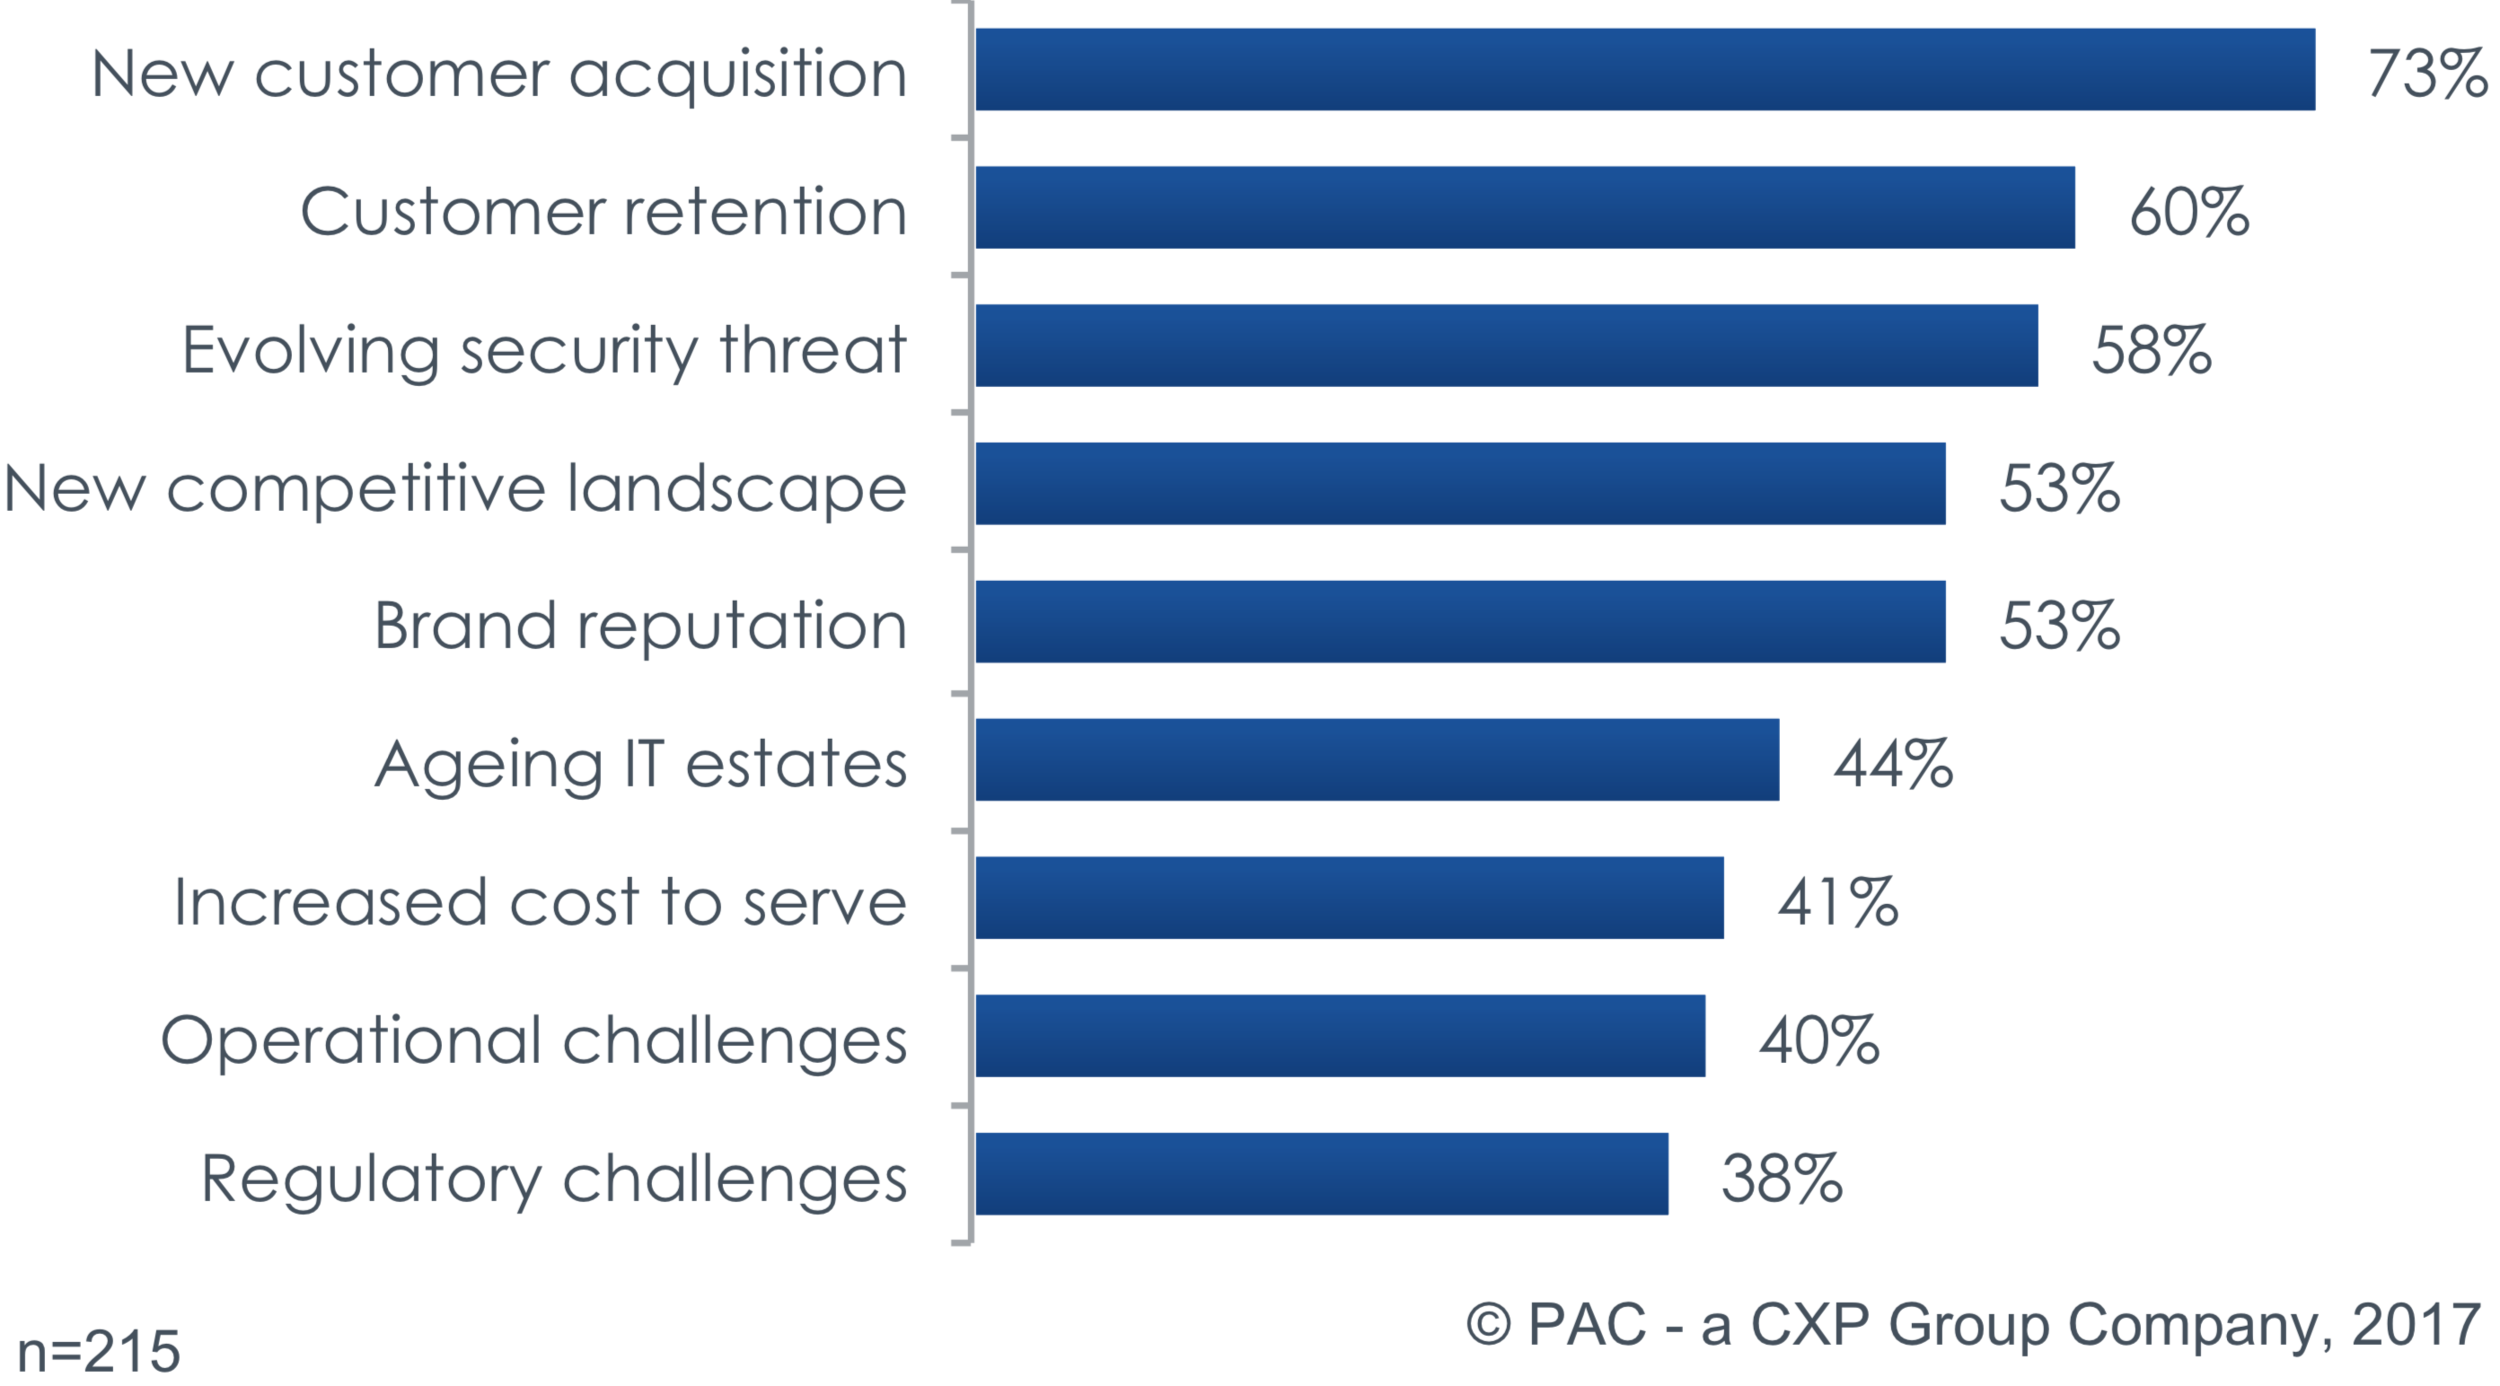 Figure 2: What are the major challenges facing your business in 2017? (source: PAC 2017)